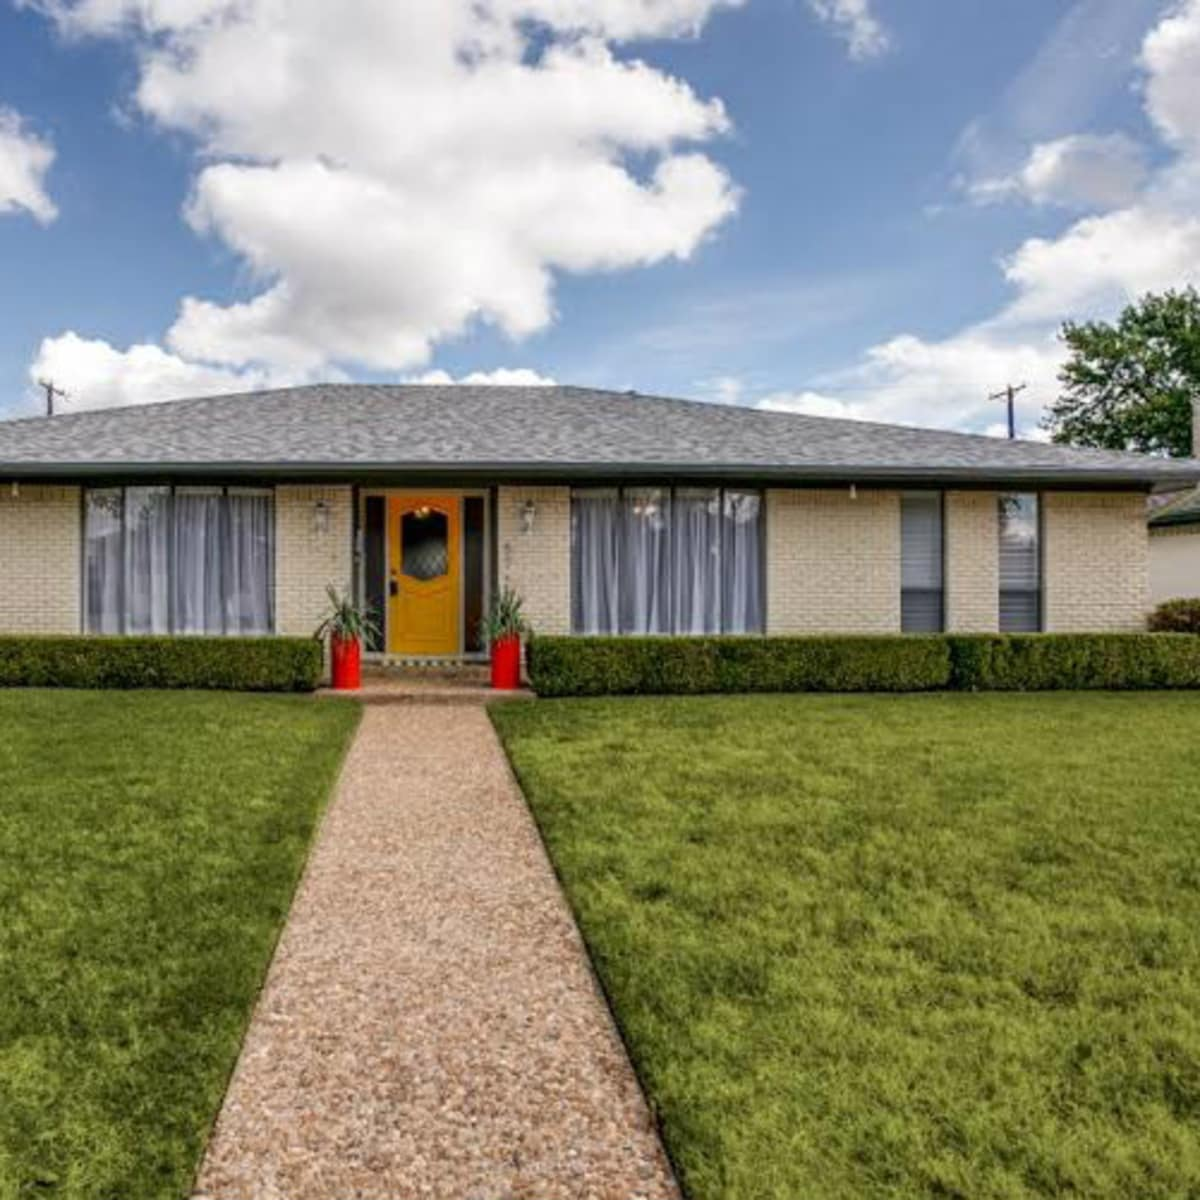 5727 Marview Ln. house for sale in Dallas